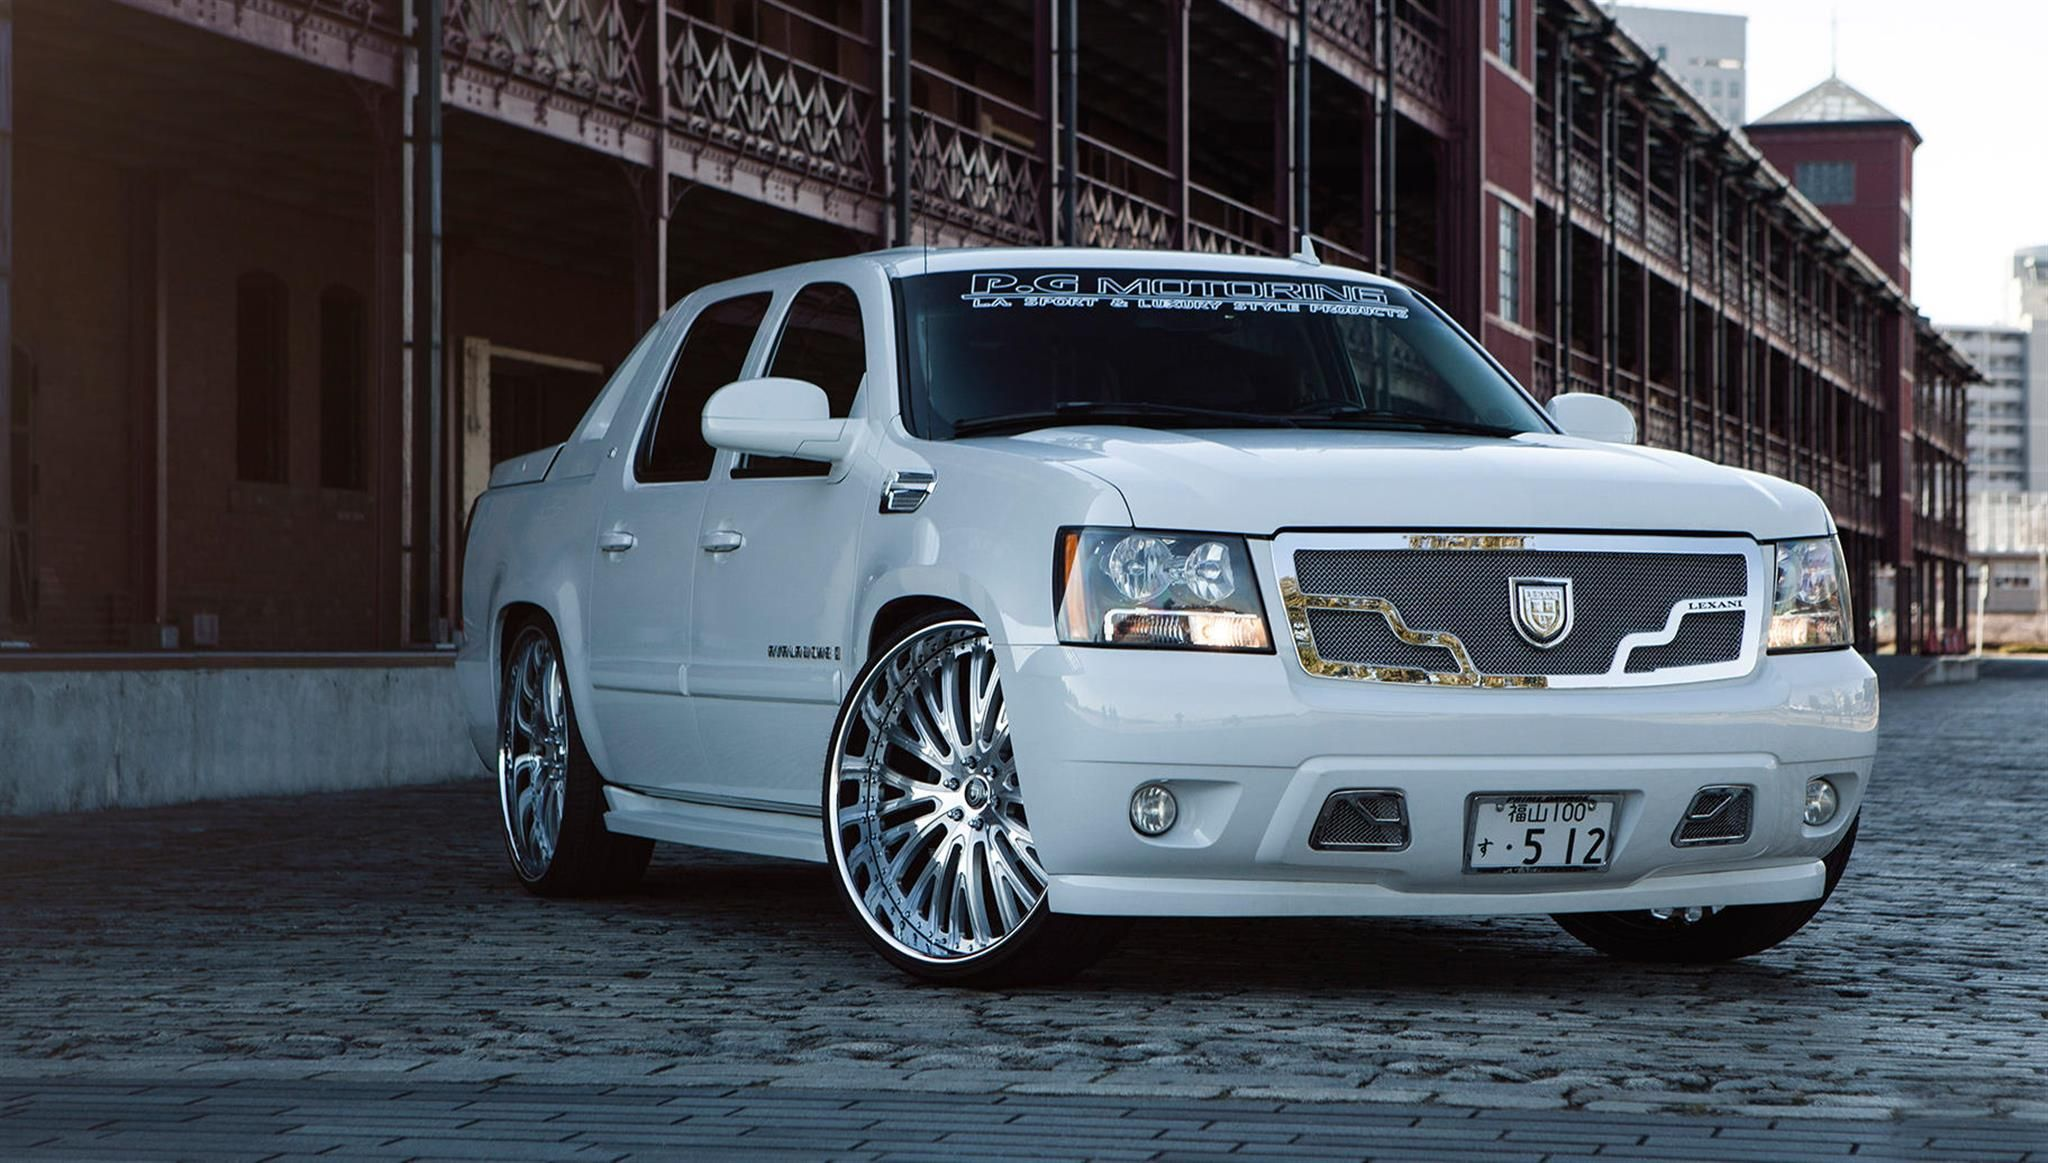 Custom lf 713 on chevrolet avalanche by lexani wheels click to view more photos